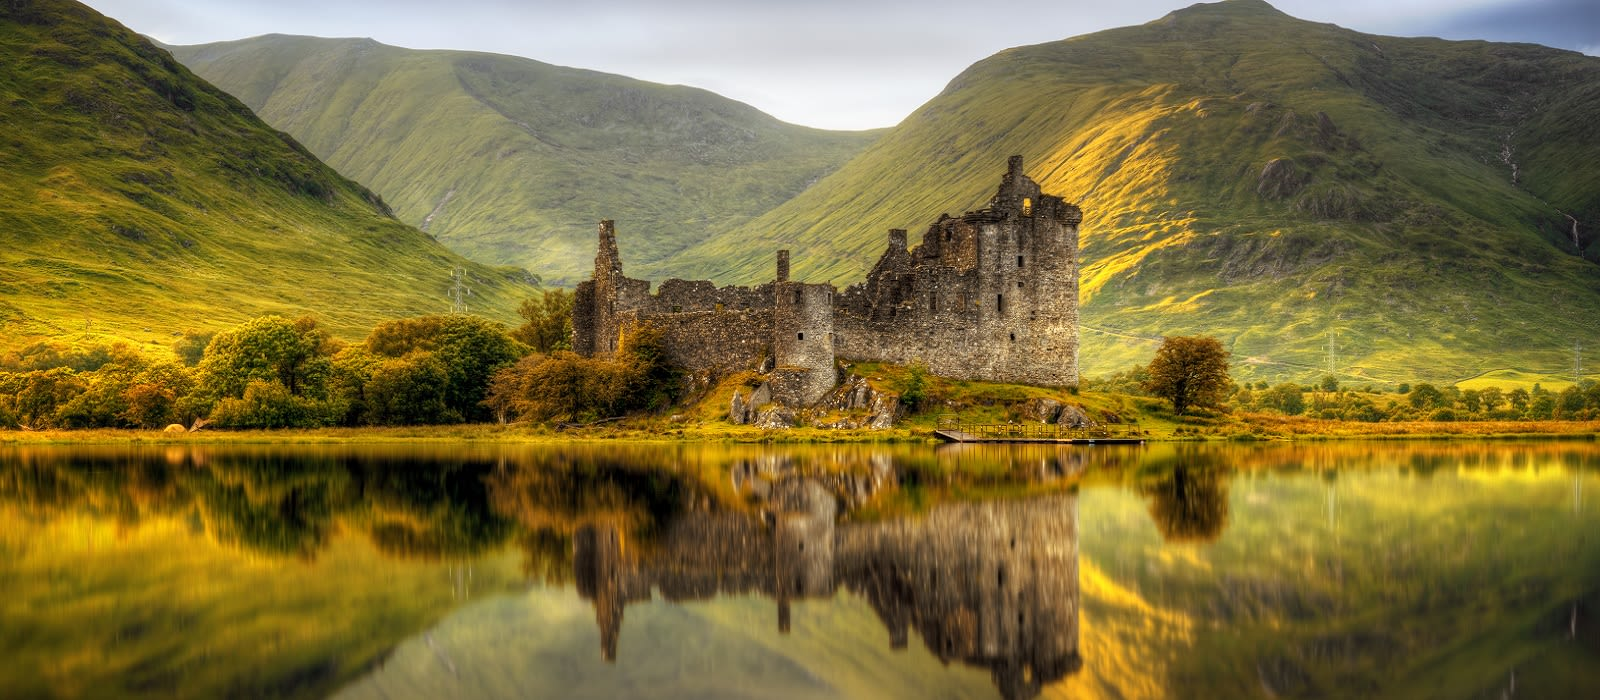 Enchanting Travels UK & Ireland Tours Kilchurn Castle reflections in Loch Awe at sunset, Scotland